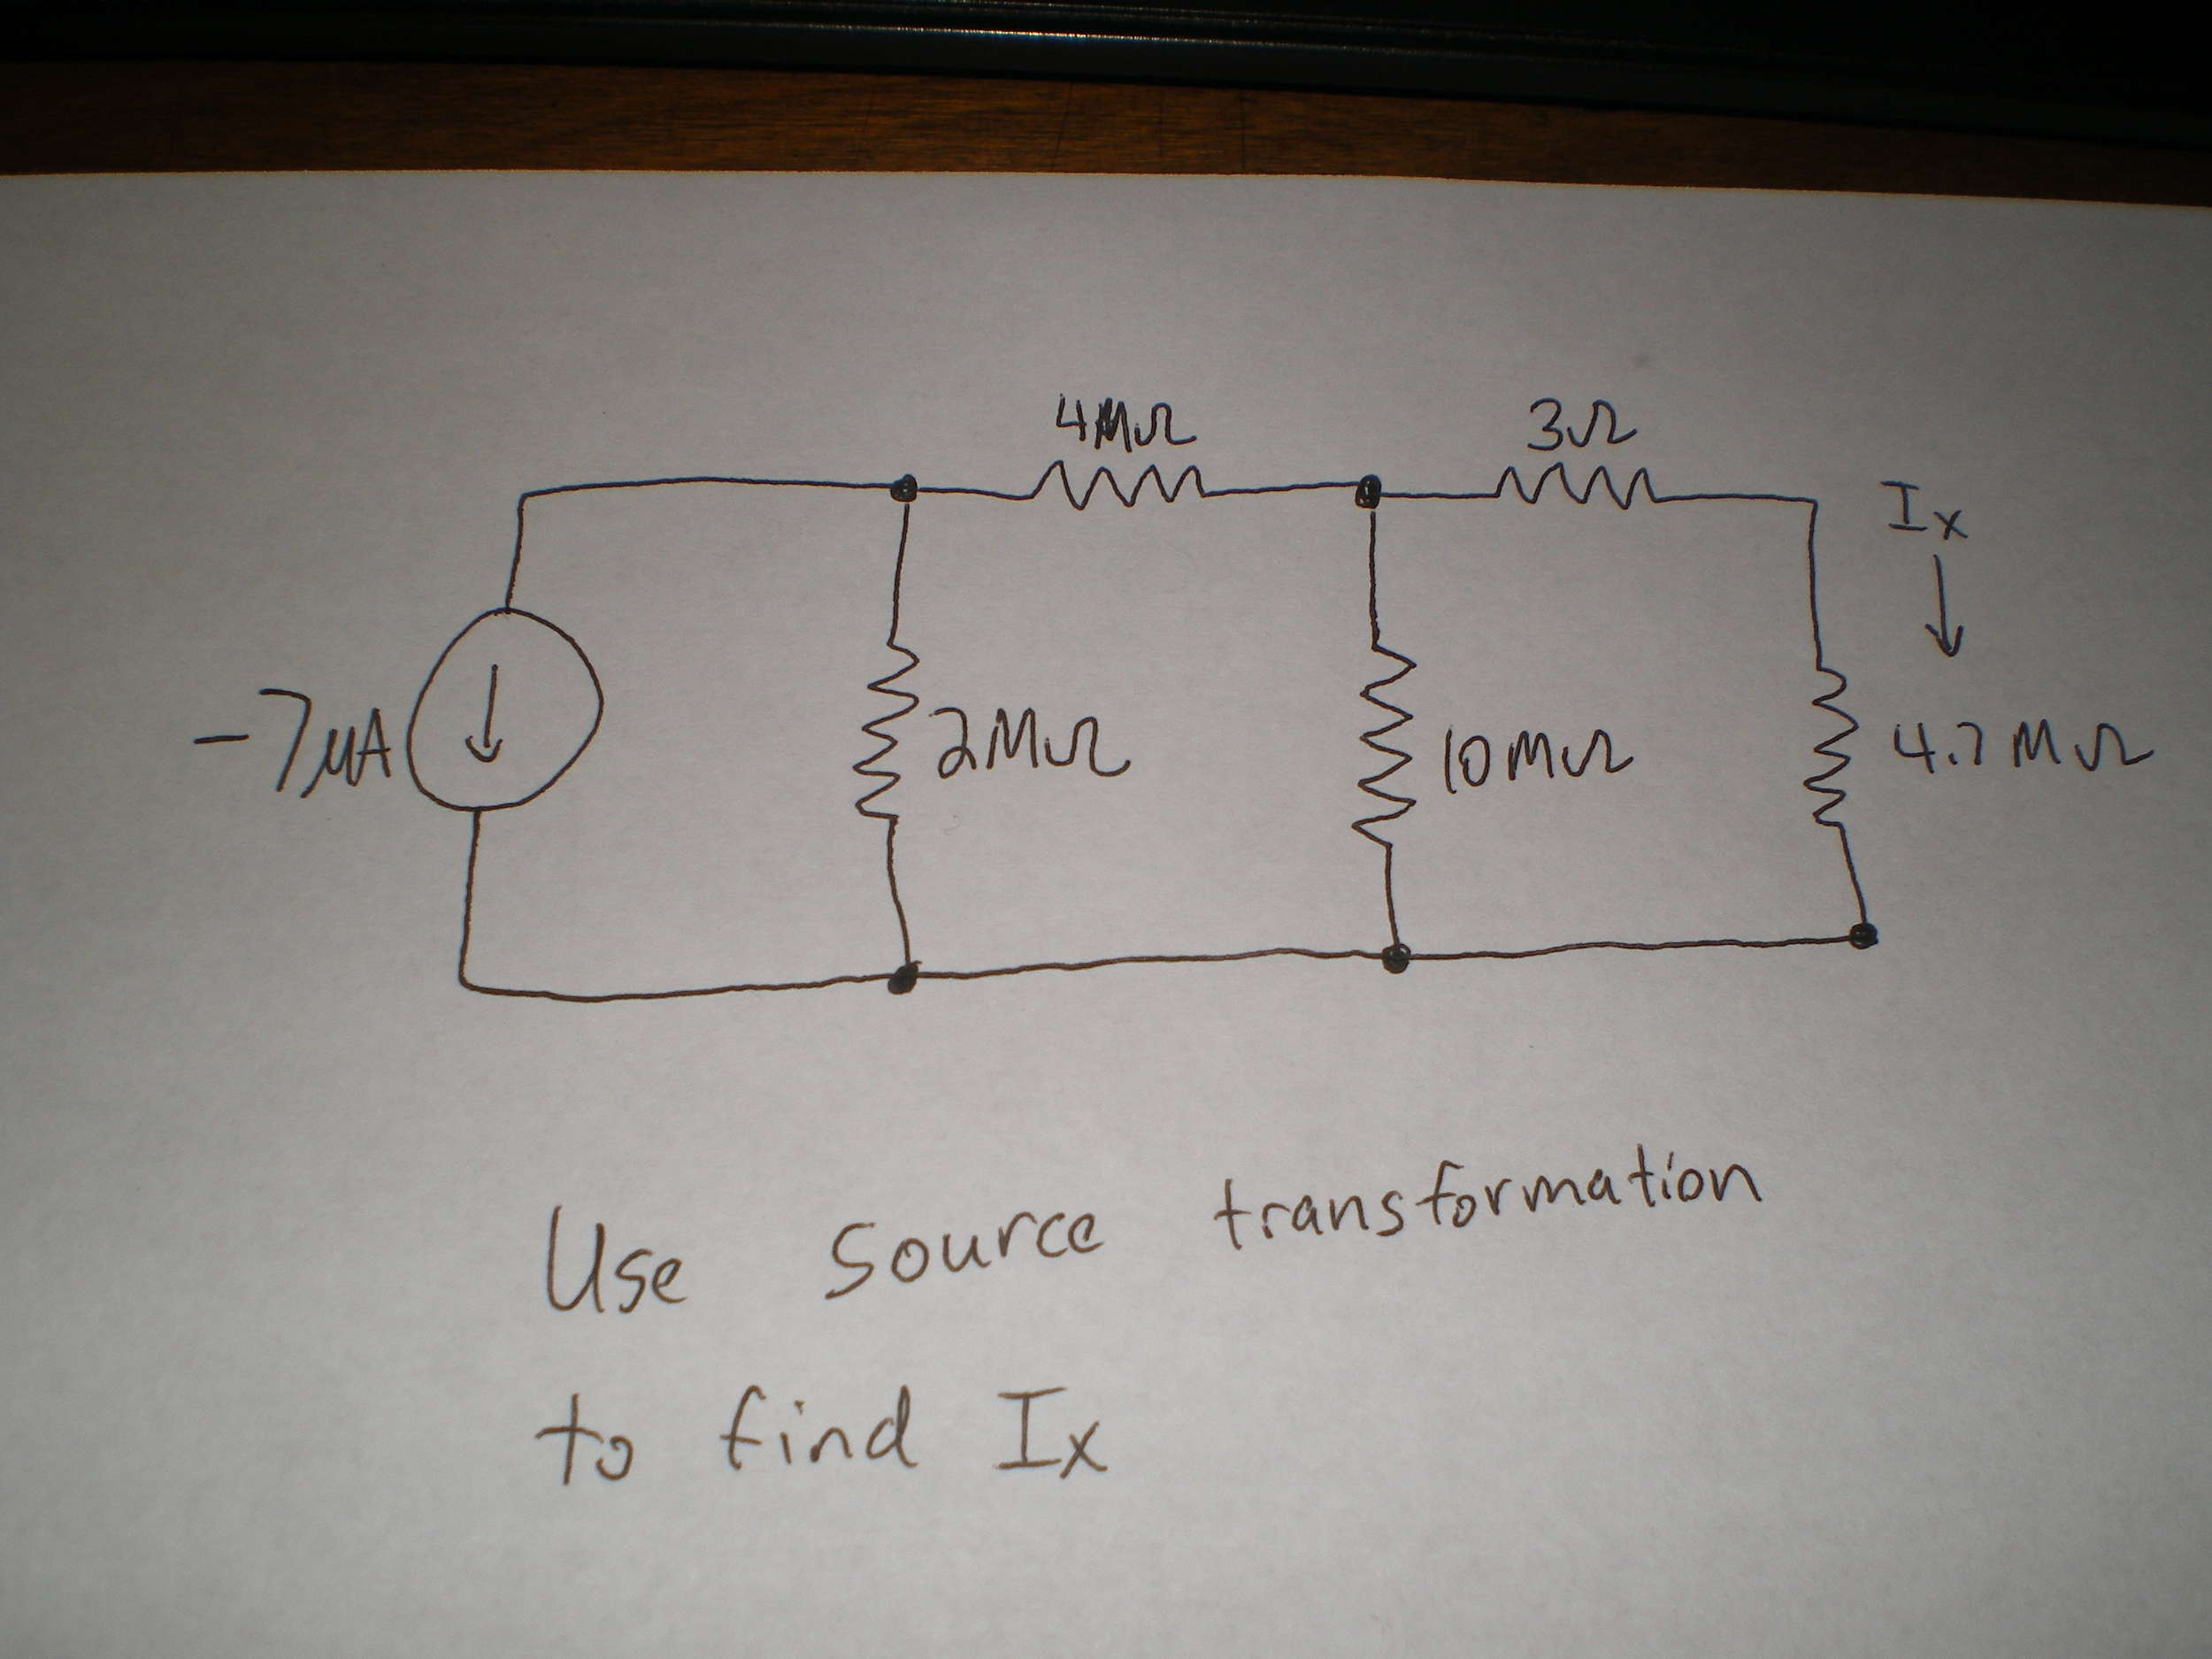 Use source transformation to find Ix